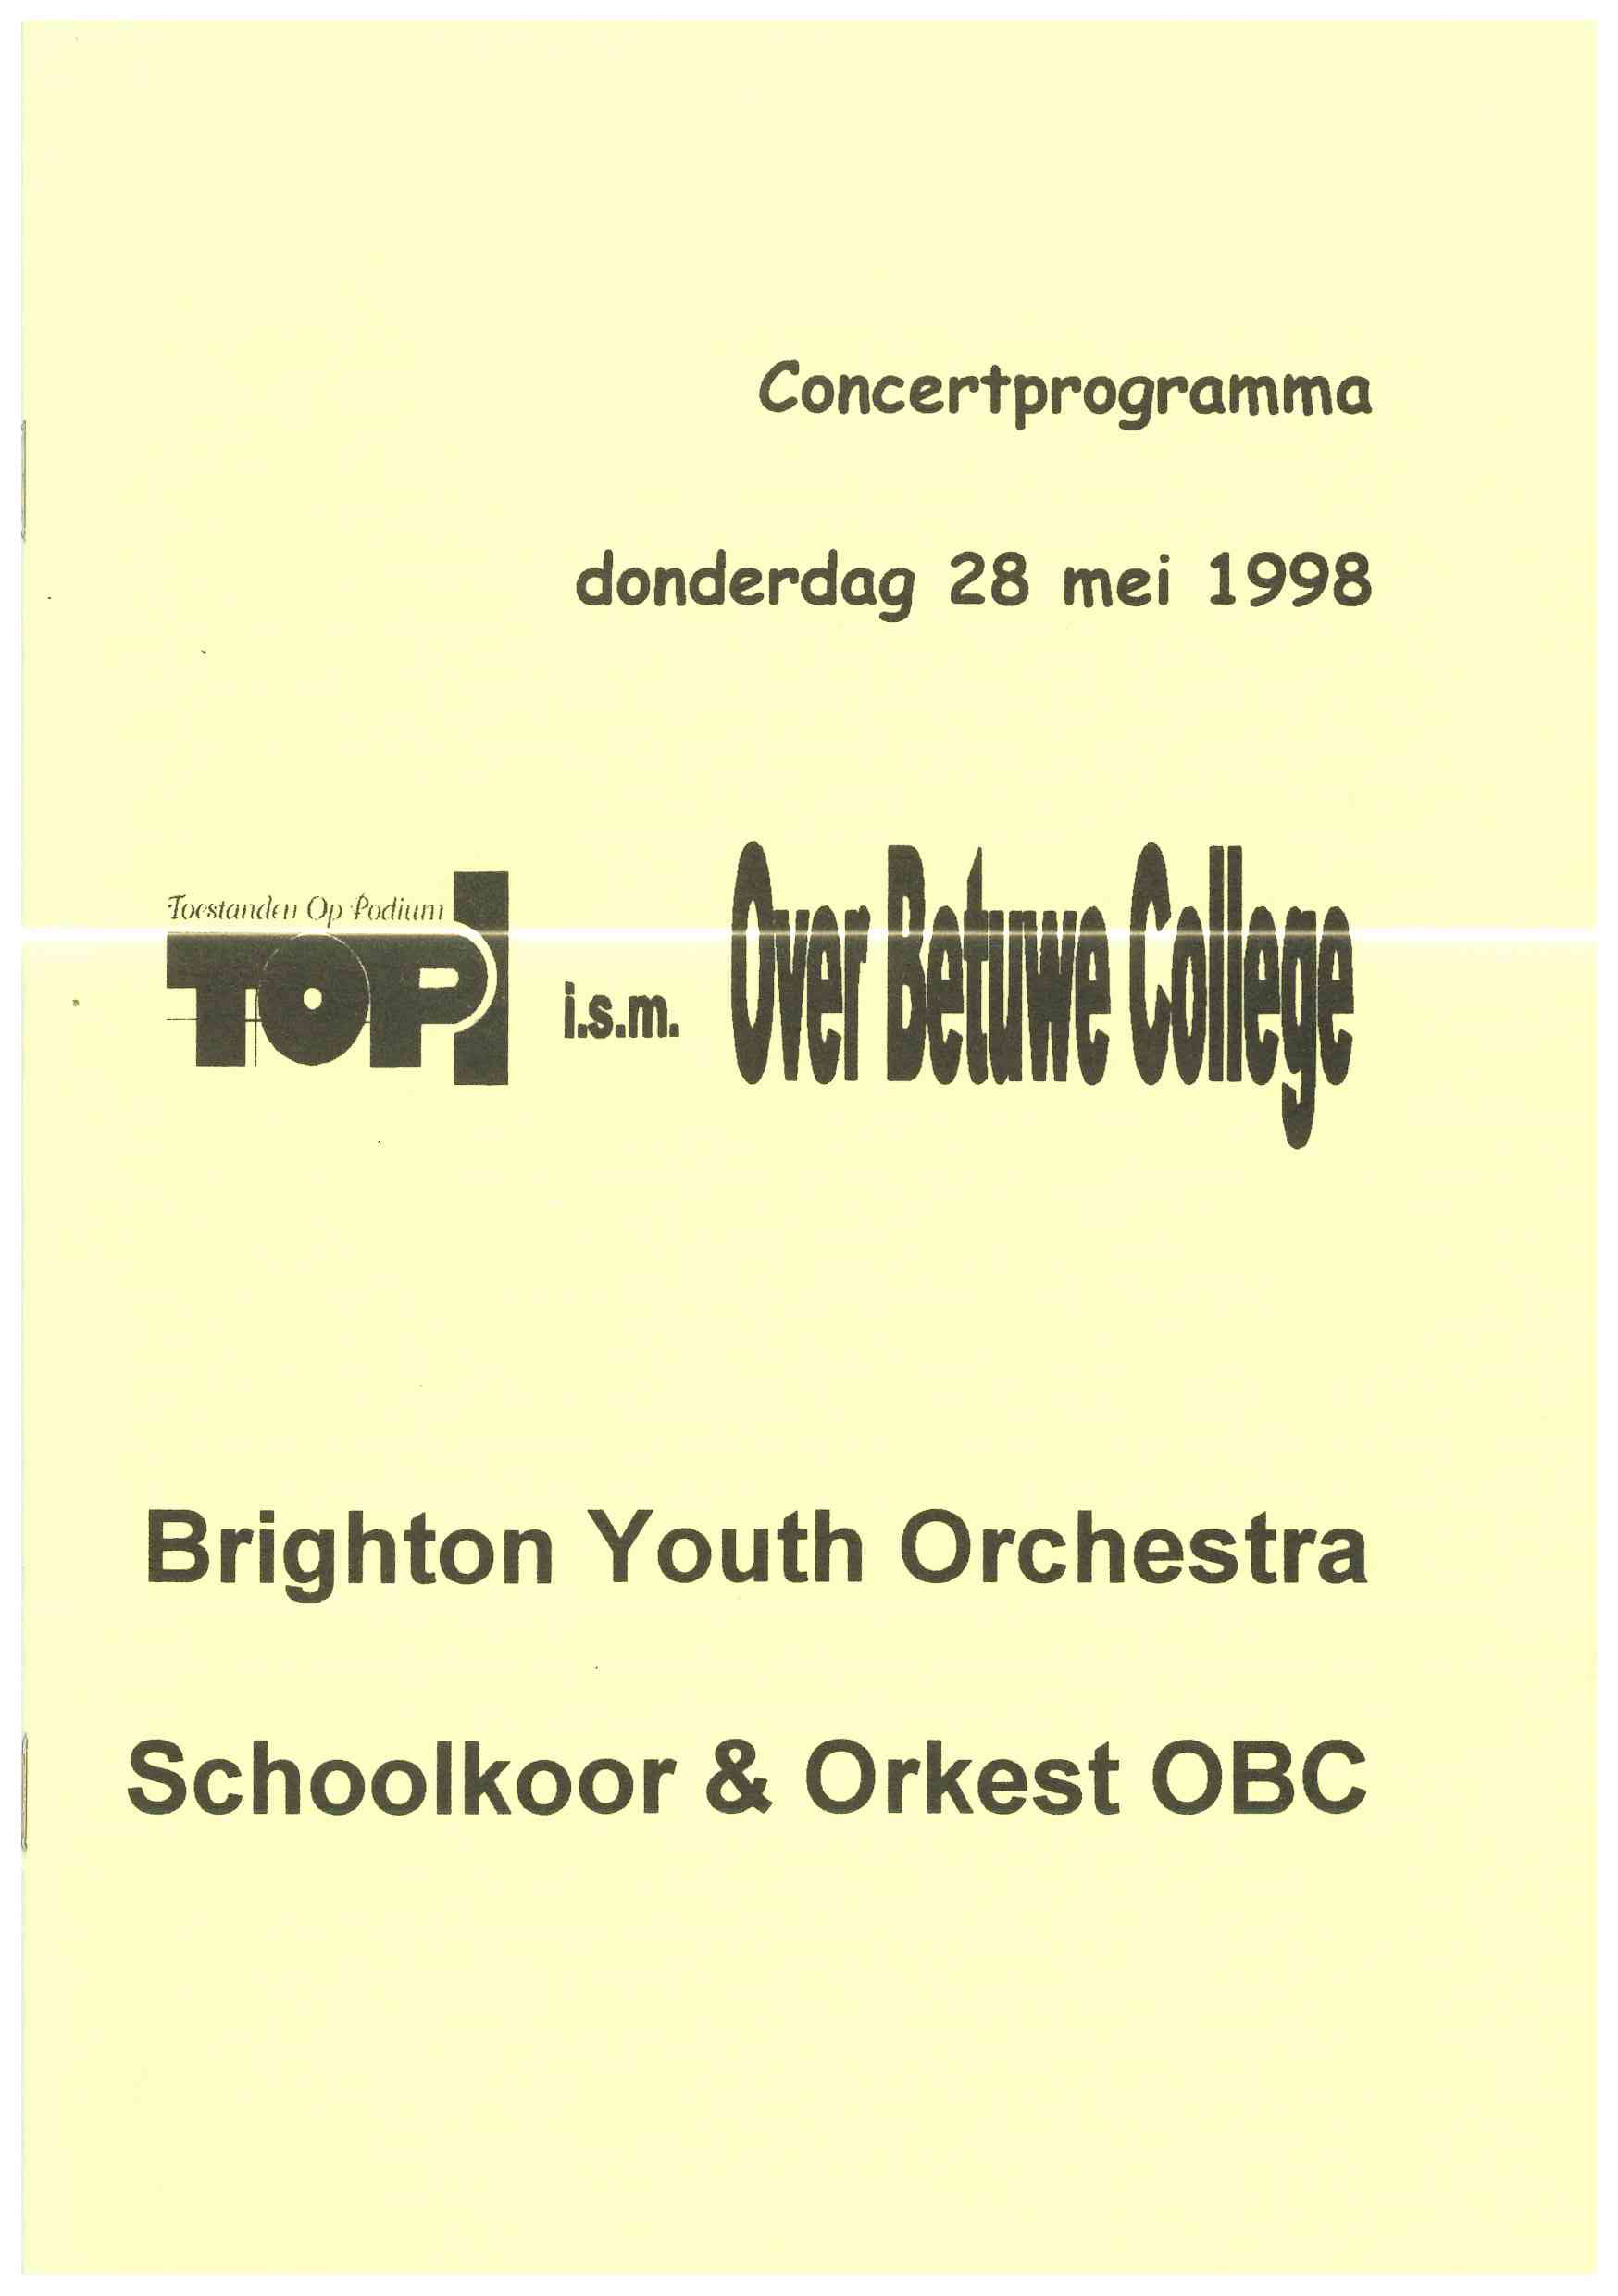 00313-BYO and Schoolkoor & Orkest OBC 28th May 1998.jpg